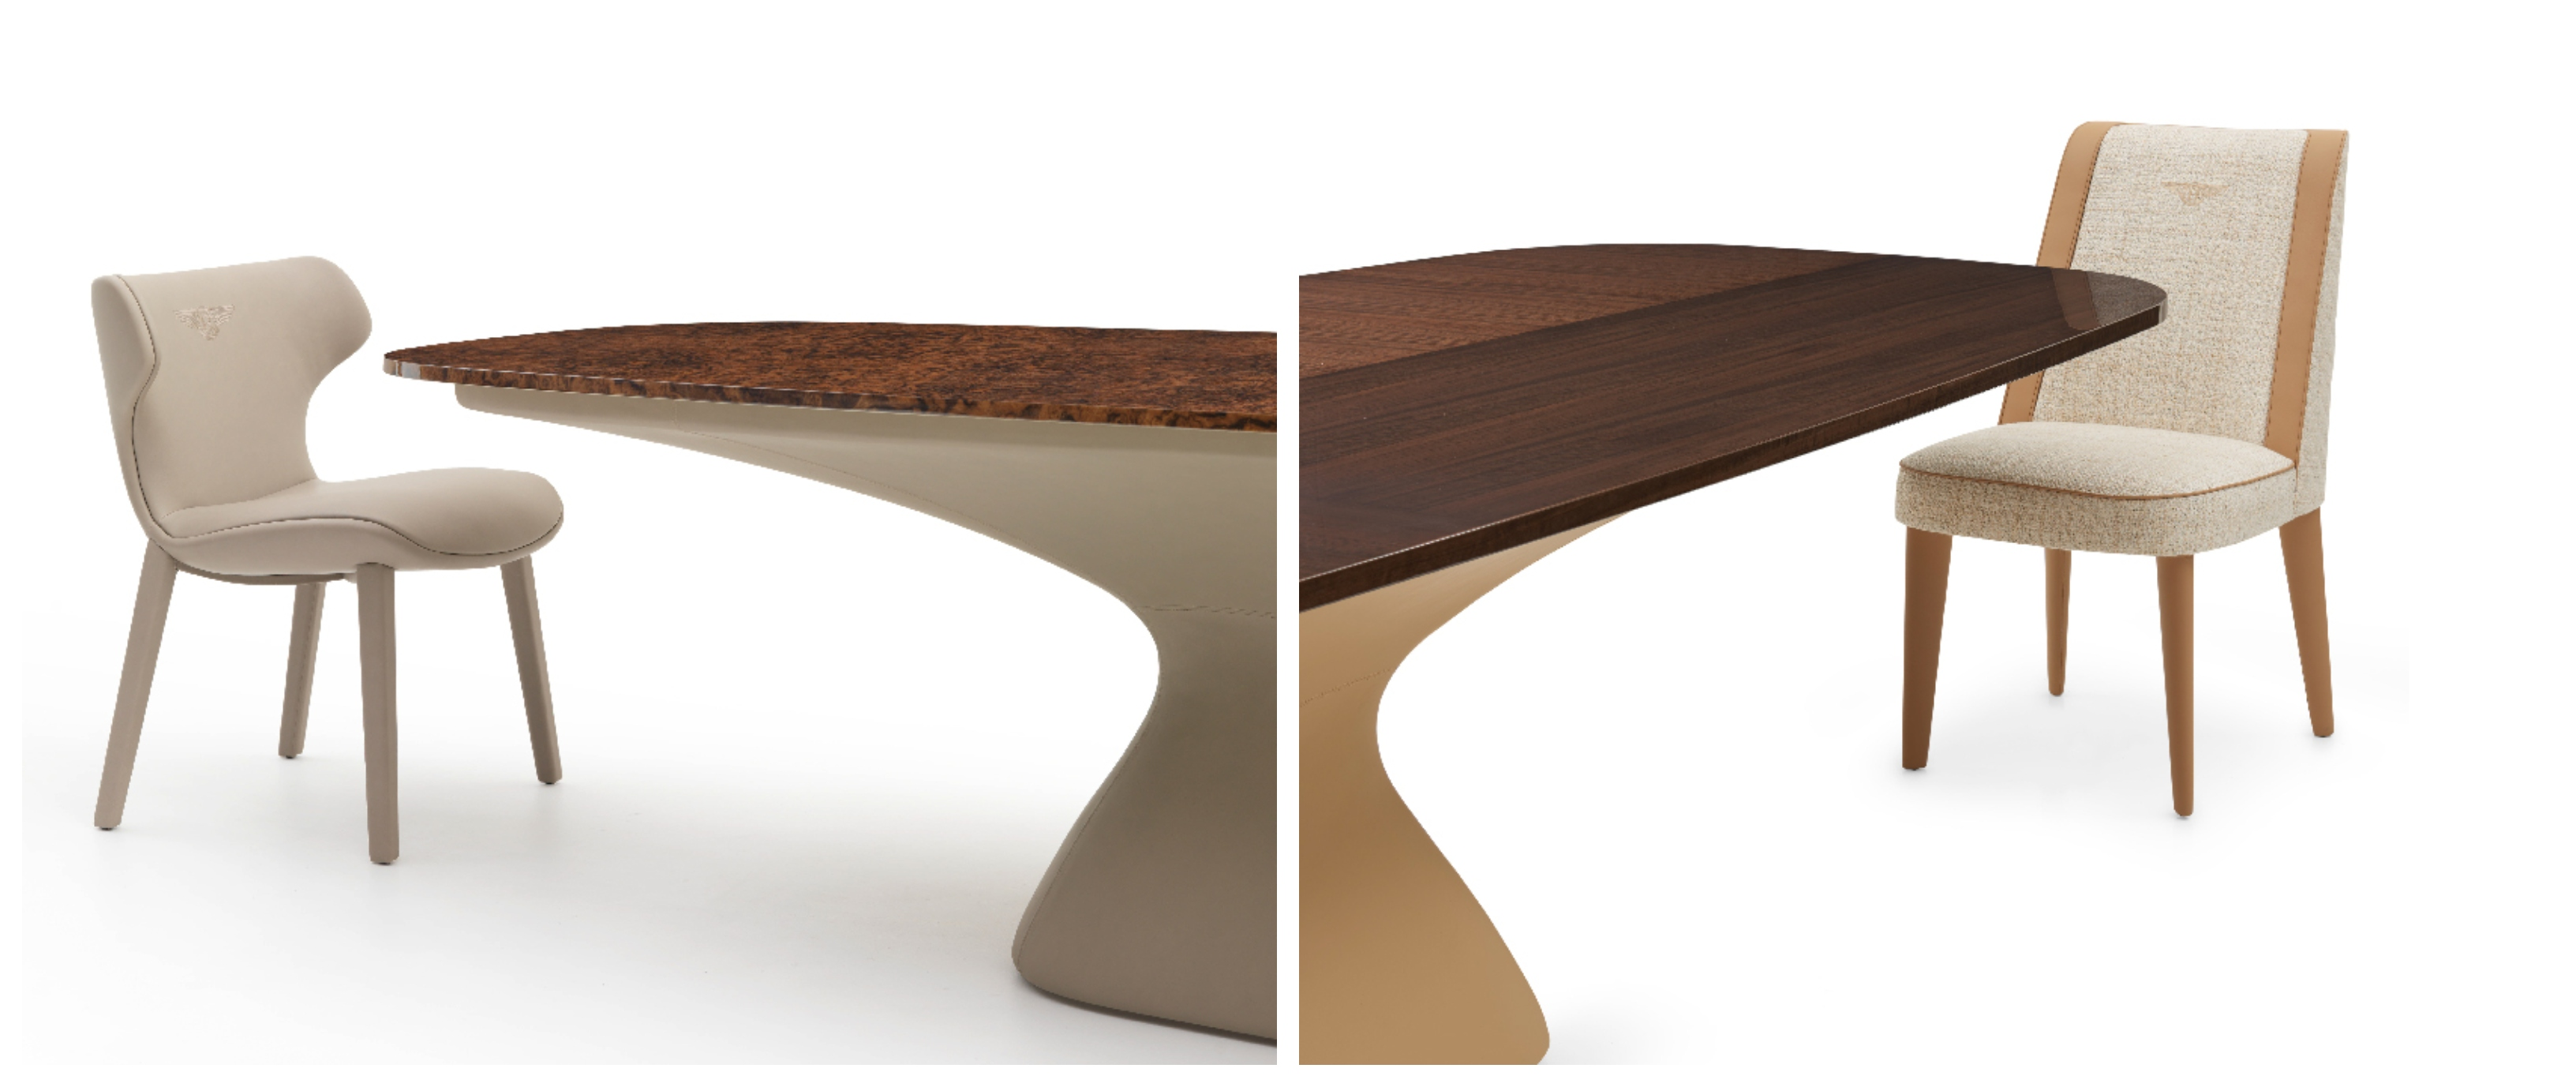 The impressive Alston table is characterised by a juxtaposition of different shapes and volumes. The model's stand-out feature is its substantial base, upholstered in leather with diamond quilt stitching. The wide table top is available in Ebony Macassar or in the briar-root veneers of the collection with polished, brushed finishes. This contrasts with the matt lacquered skirting, colour coordinated with the base.